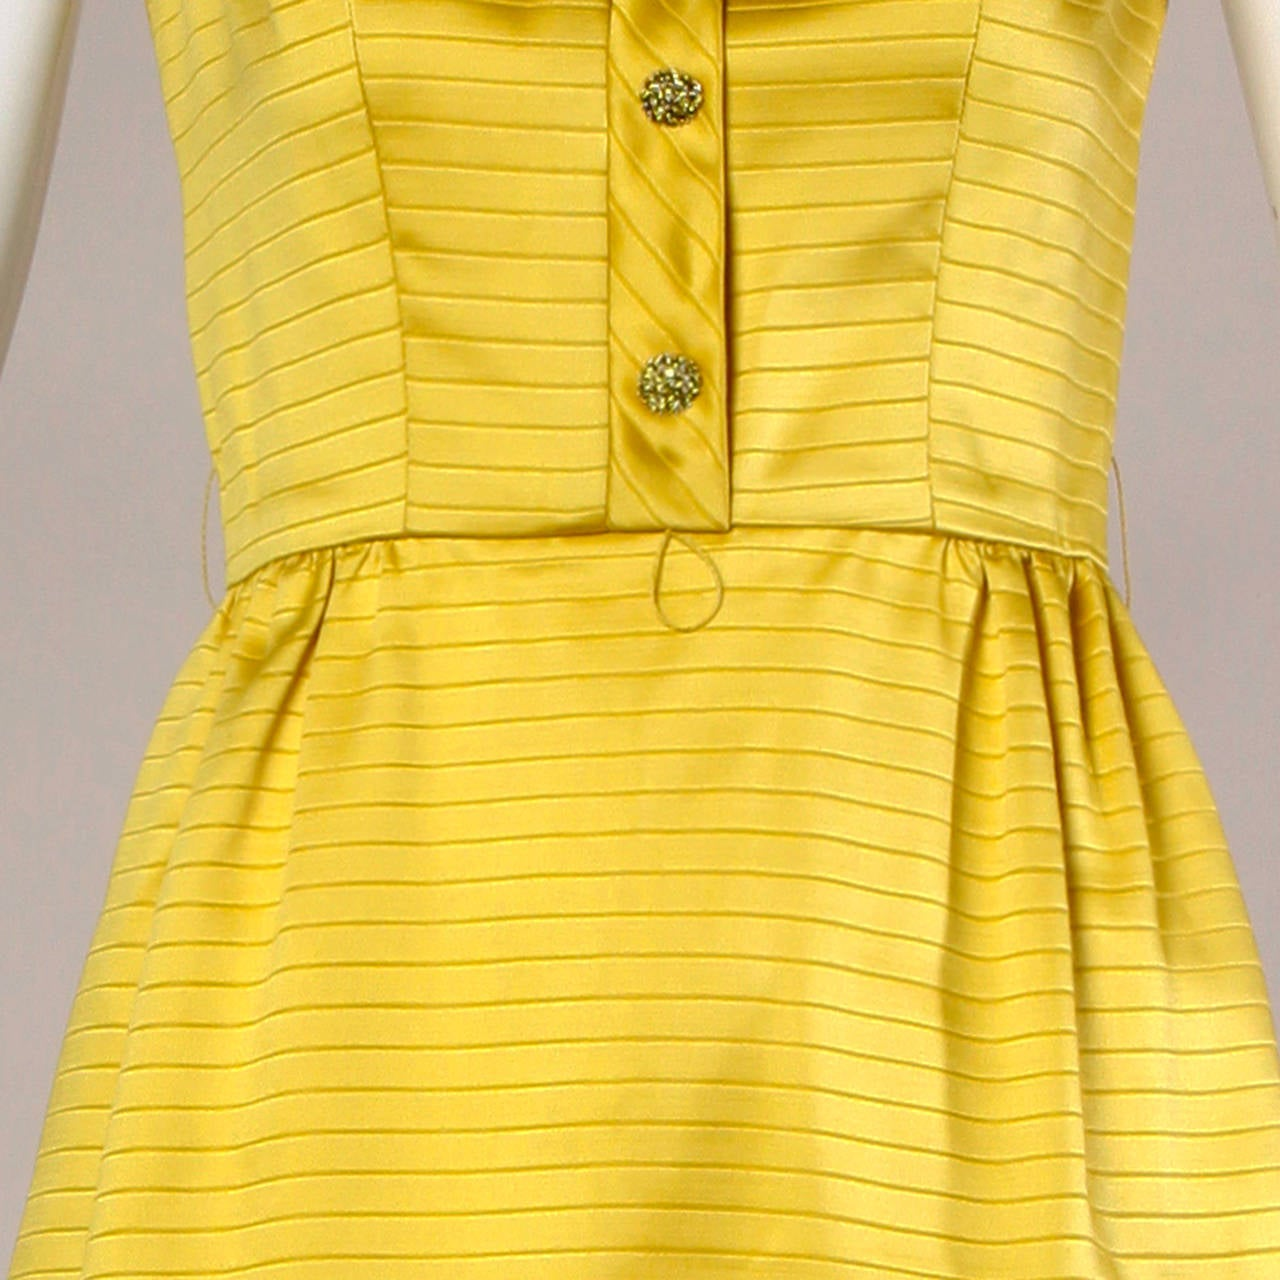 Darling 1960s Vintage Yellow Mini Dress with Rhinestone Buttons 6